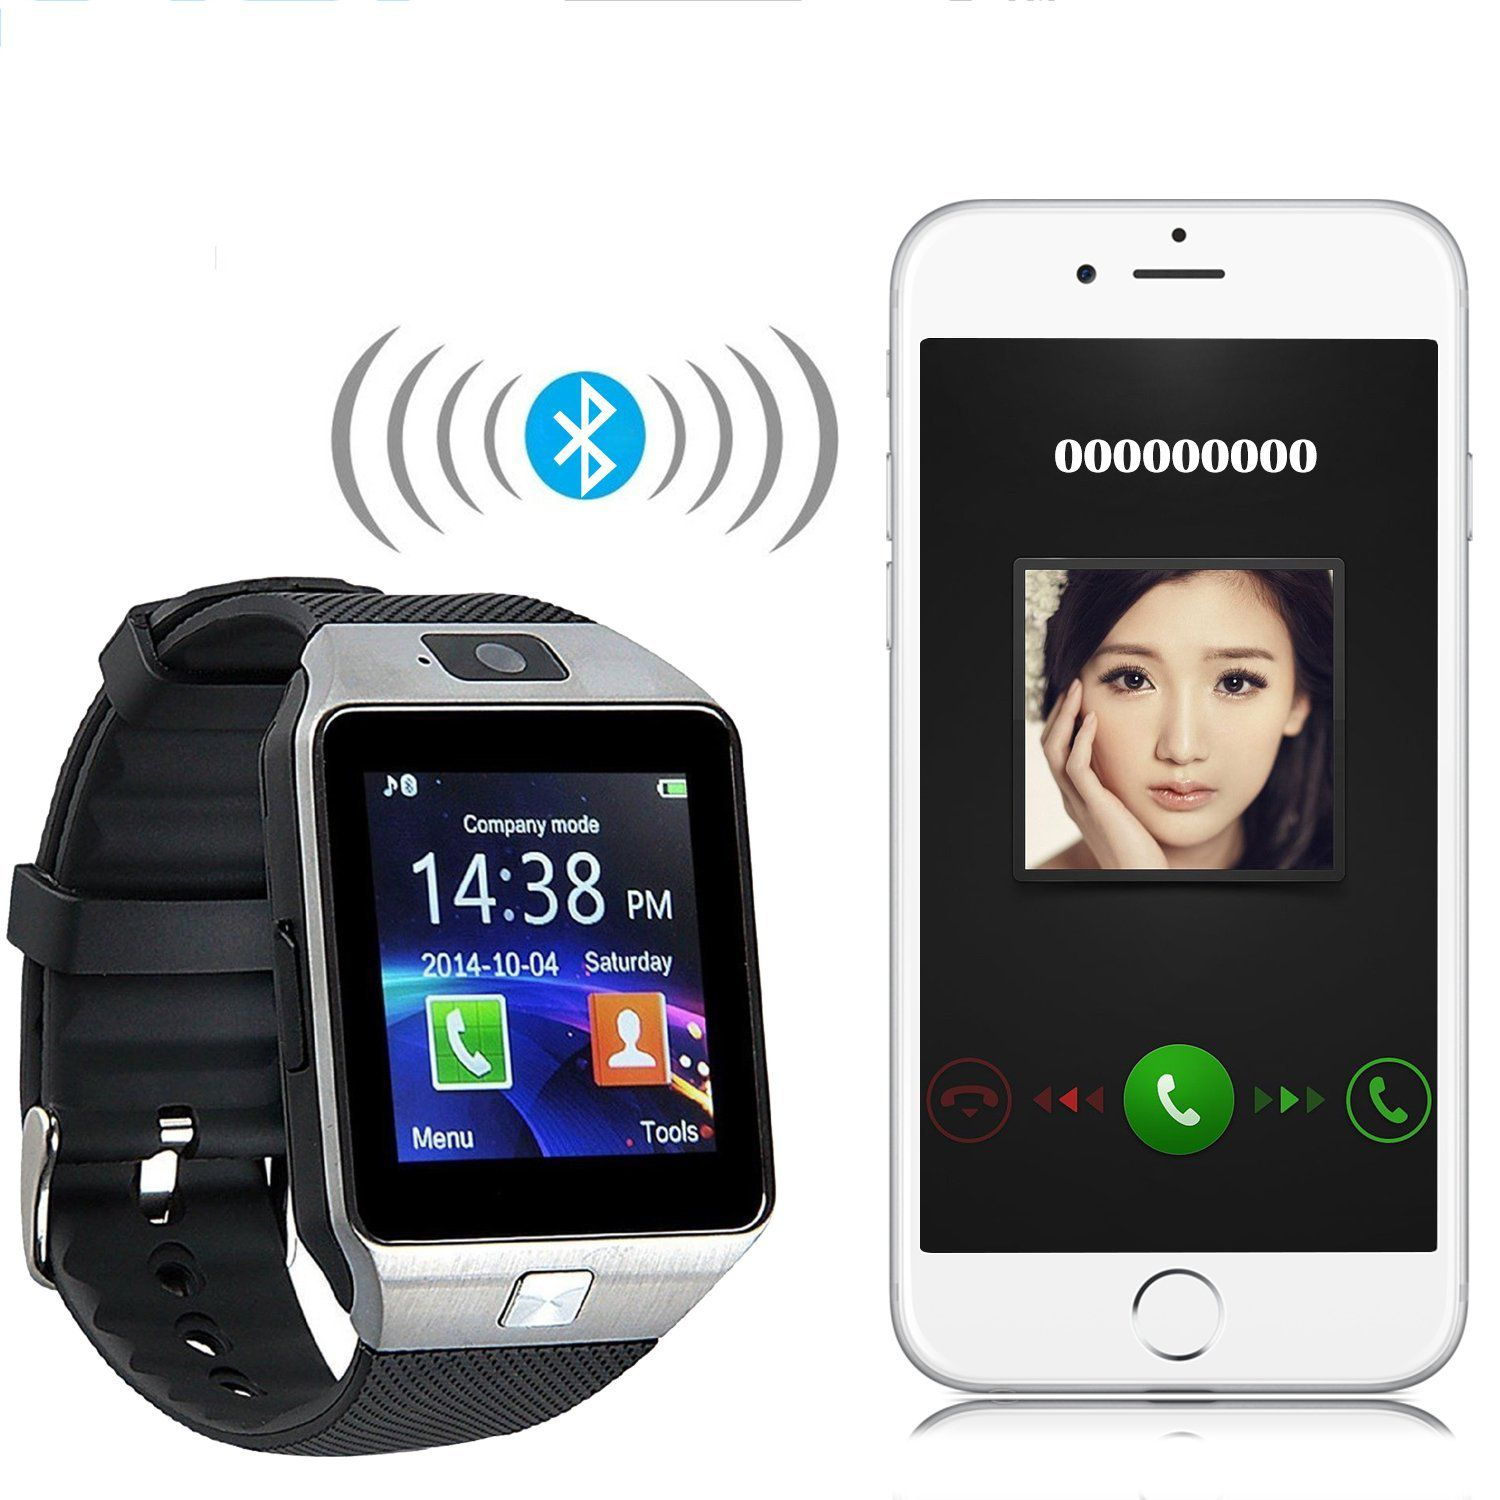 on lte s watches time watch apple mobile hands with cellular smartwatch first phone call